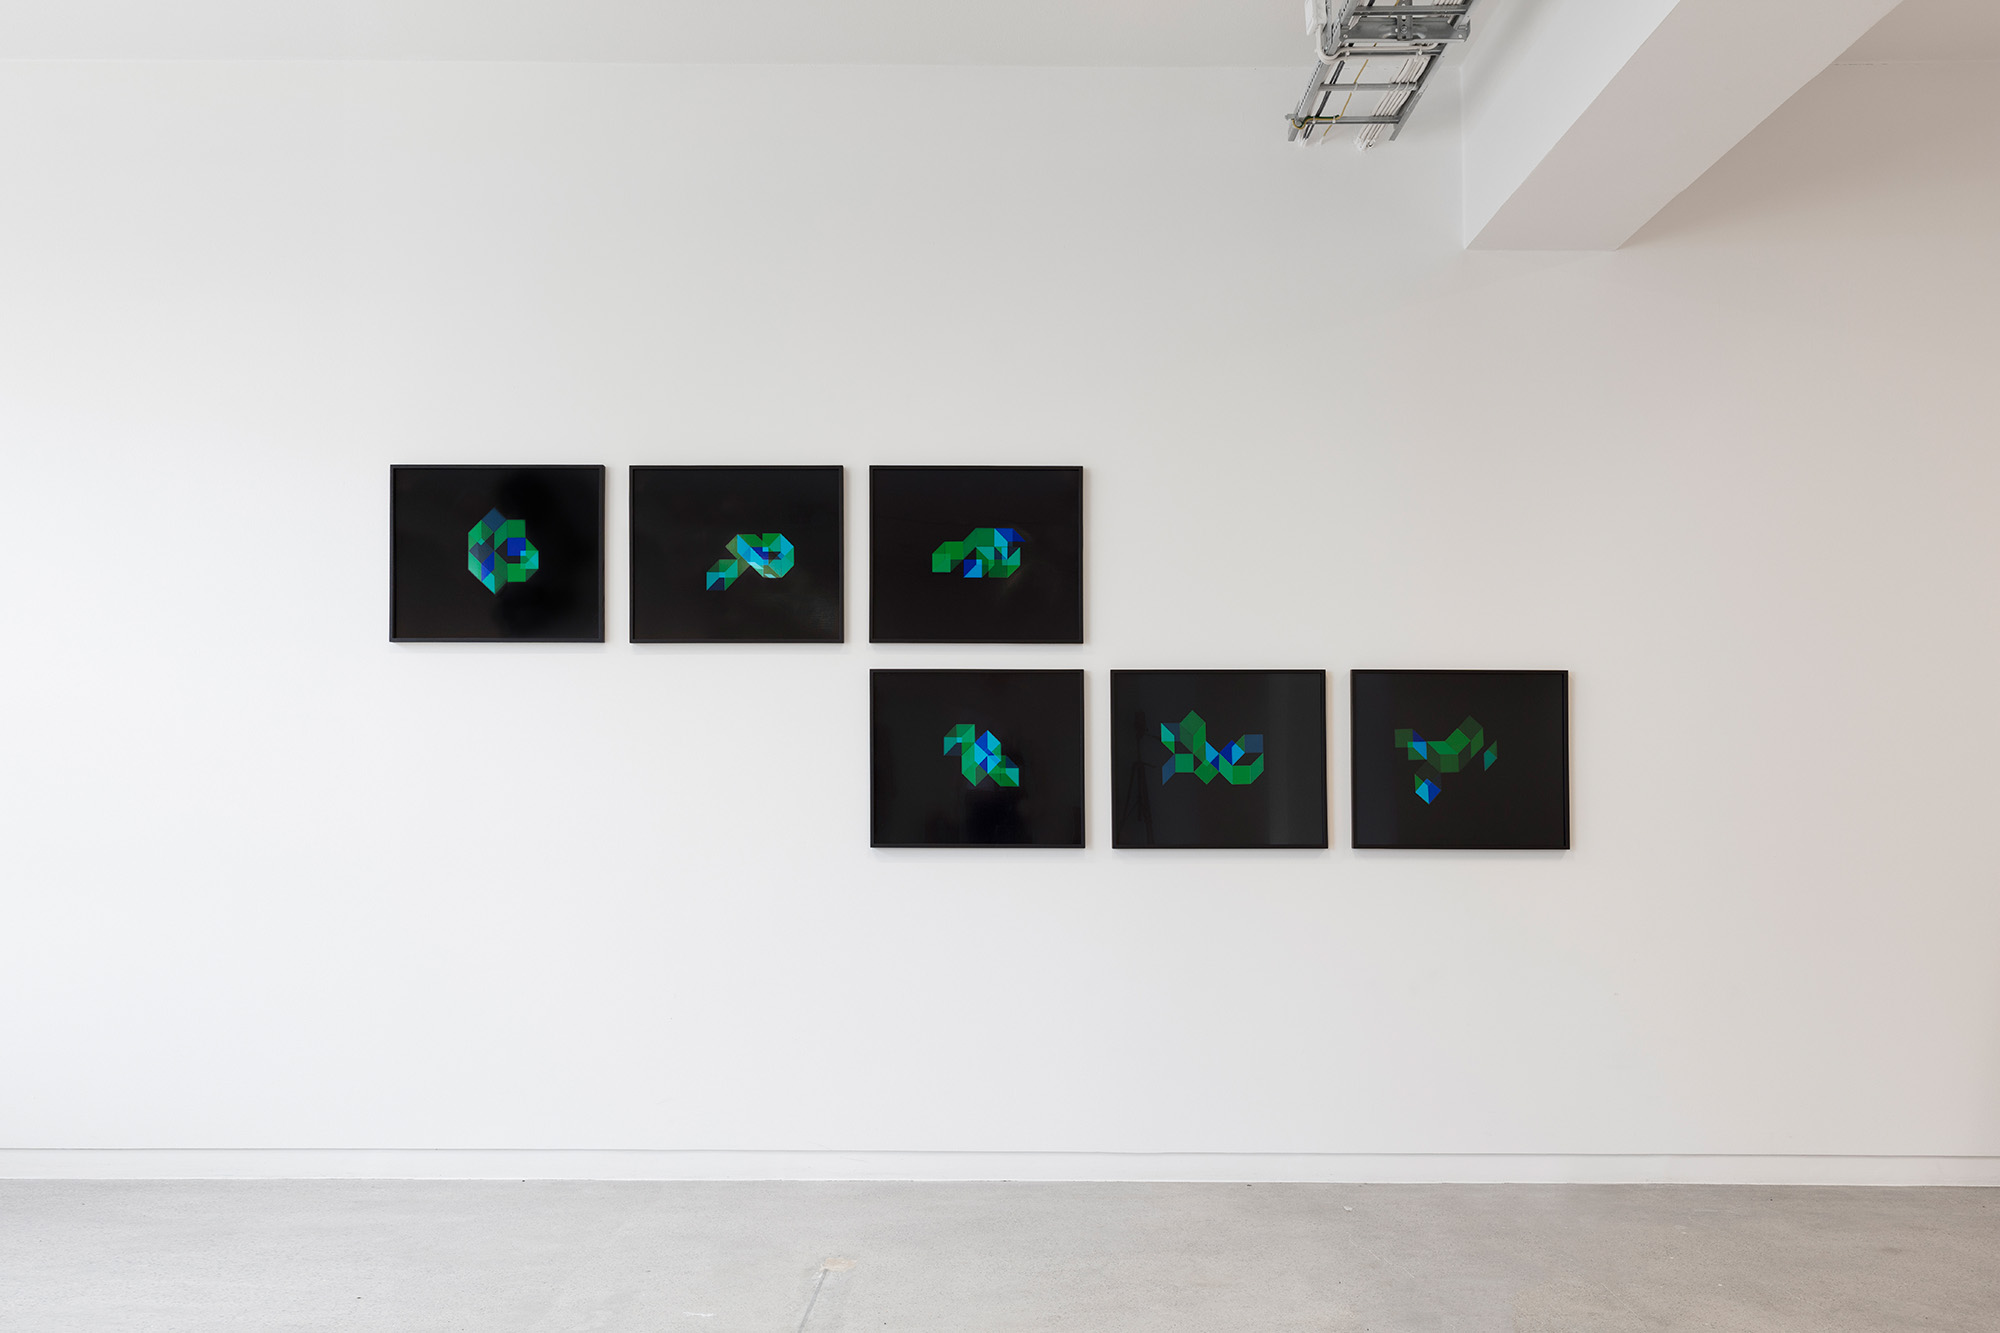 Emil Salto at Golsa, curated by MELK 2018